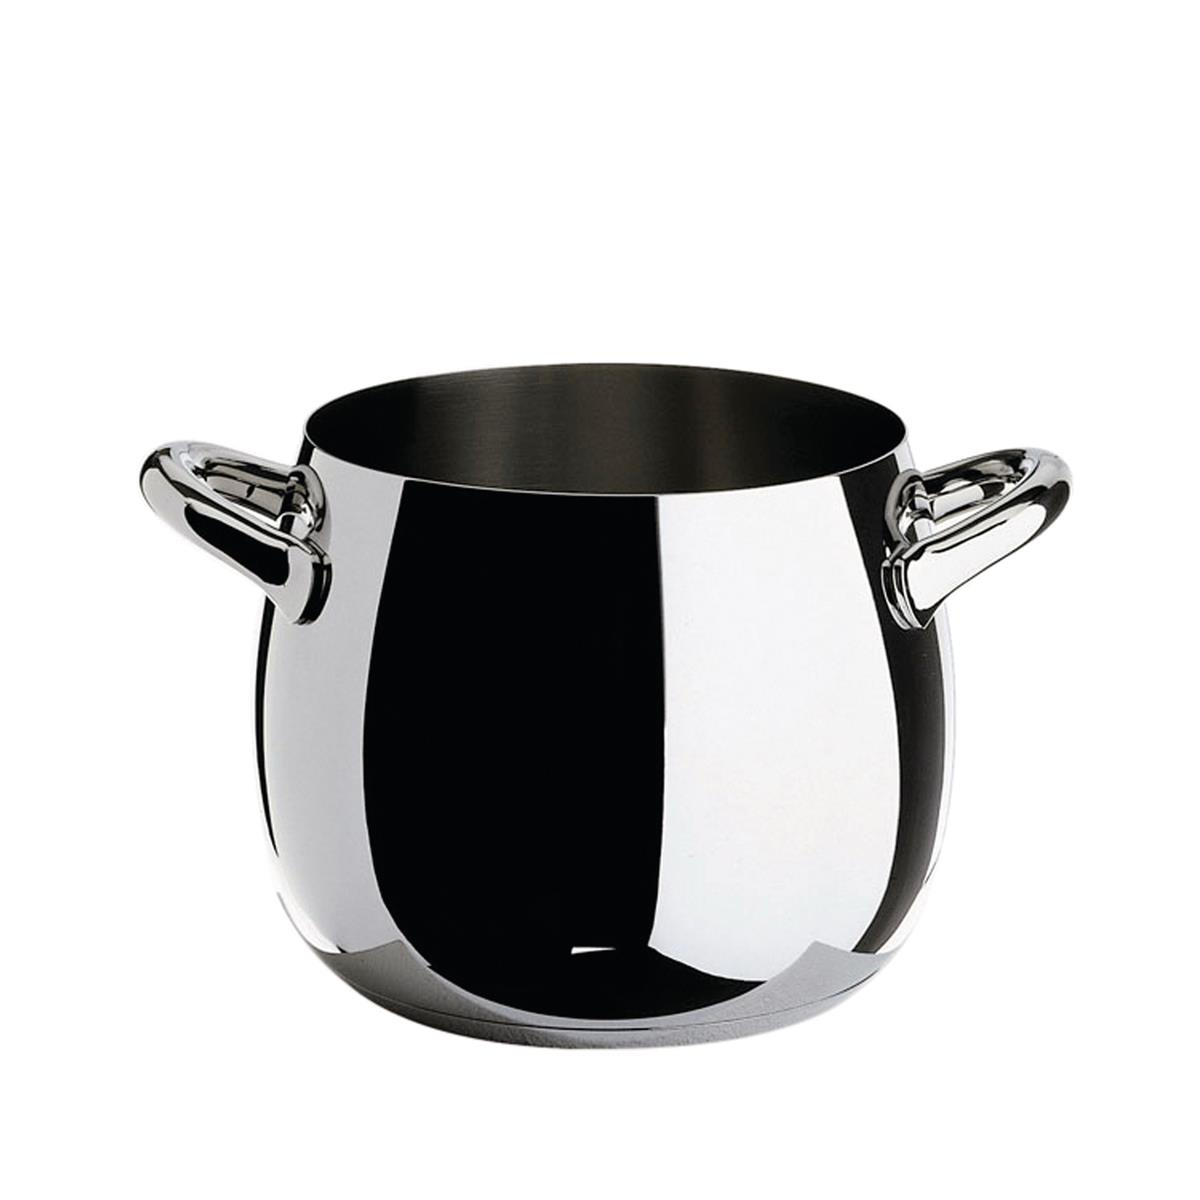 Alessi-Mami Pot in 18/10 stainless steel suitable for induction